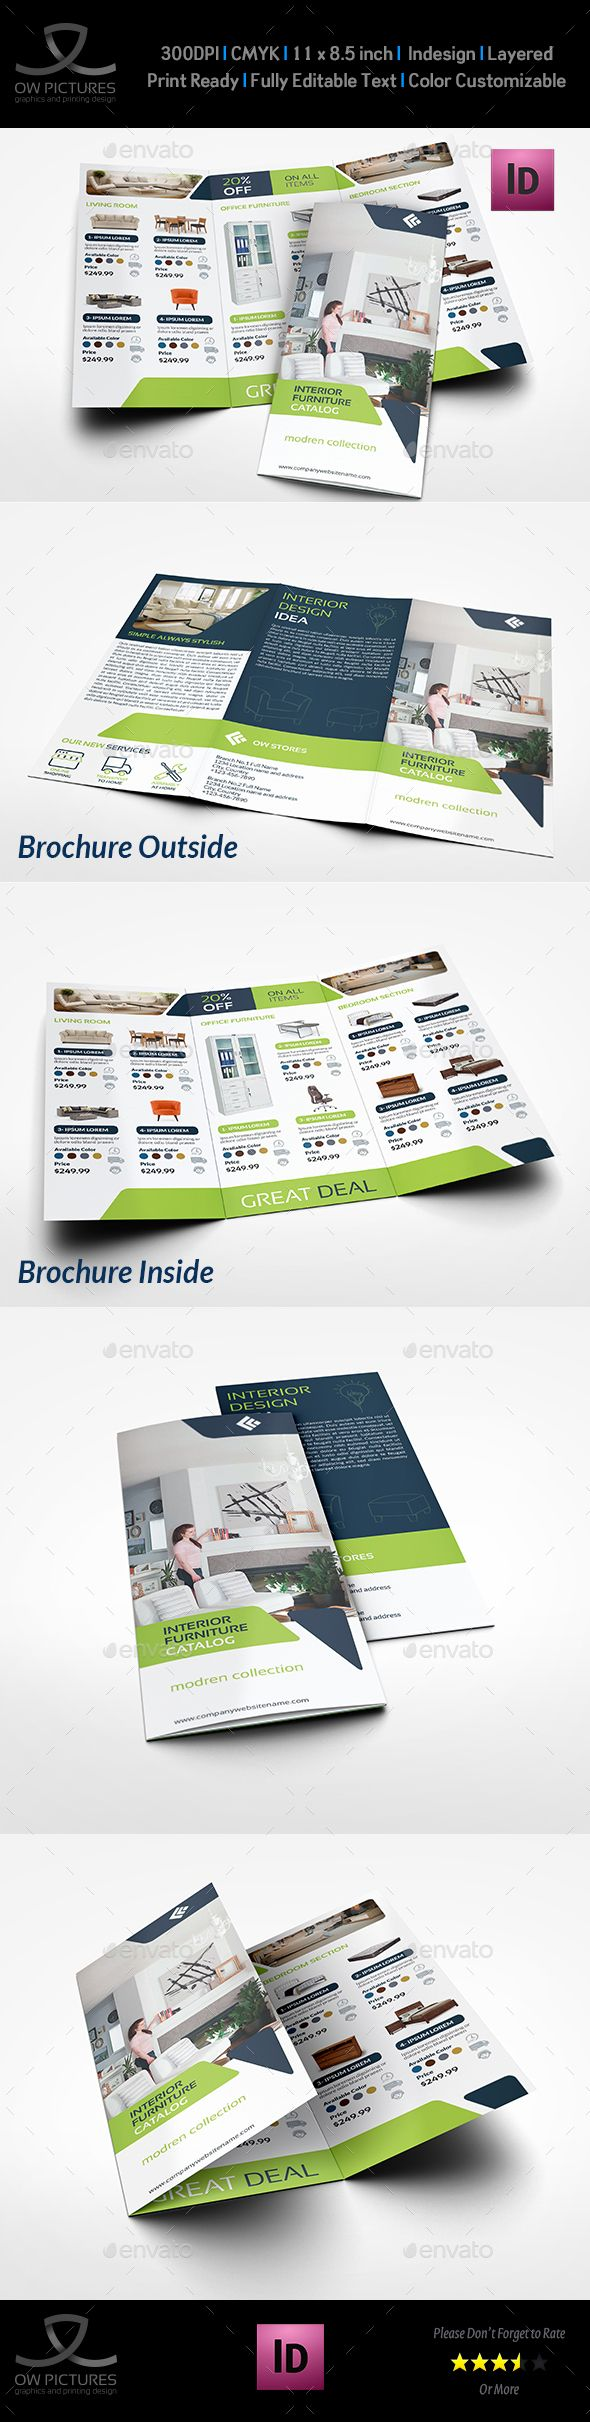 17 Best ideas about Product Catalog Design on Pinterest | Catalog ...